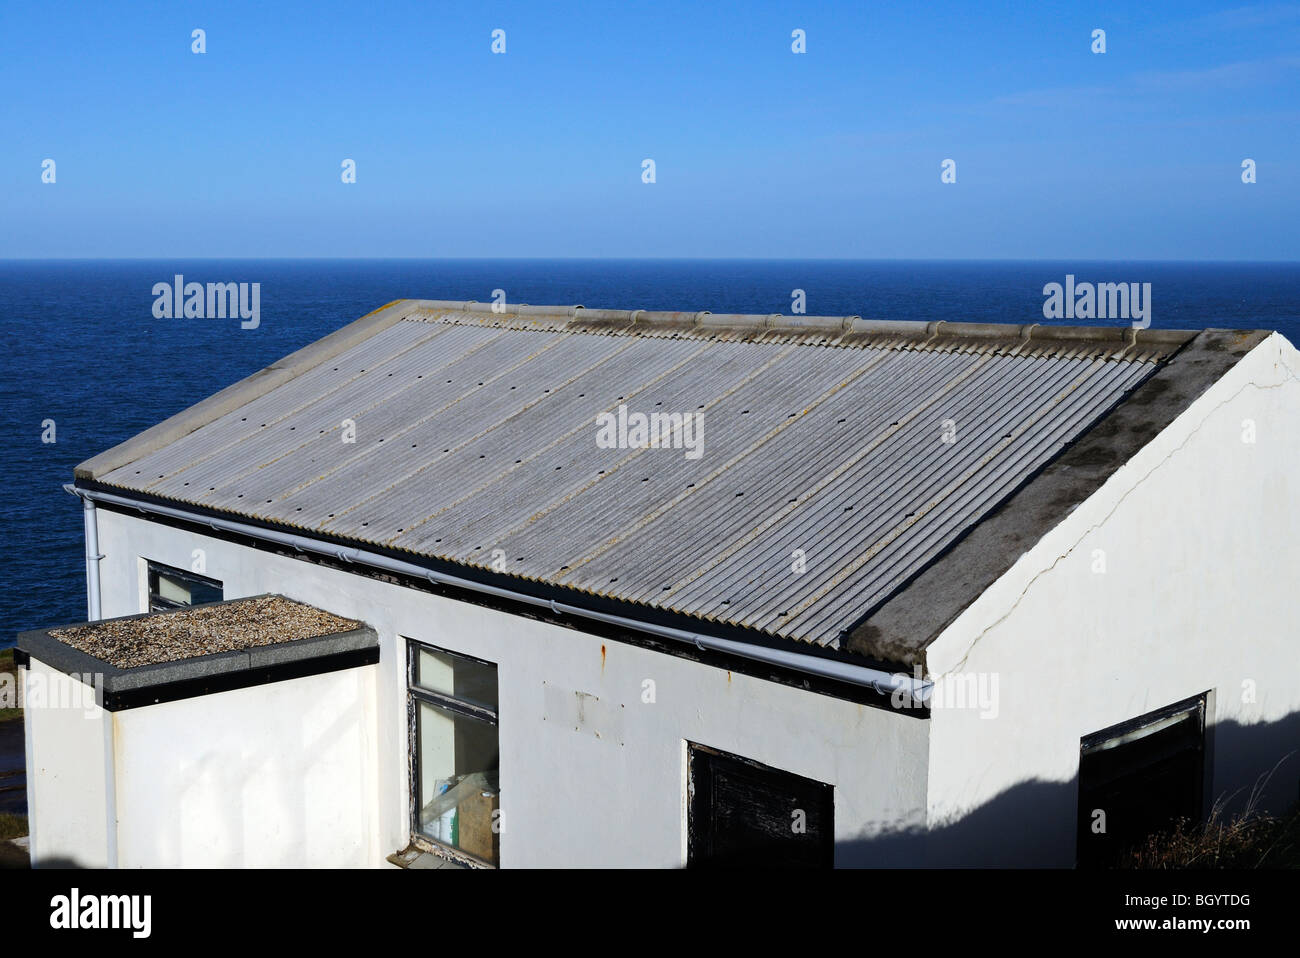 a small building with an asbestos roof - Stock Image